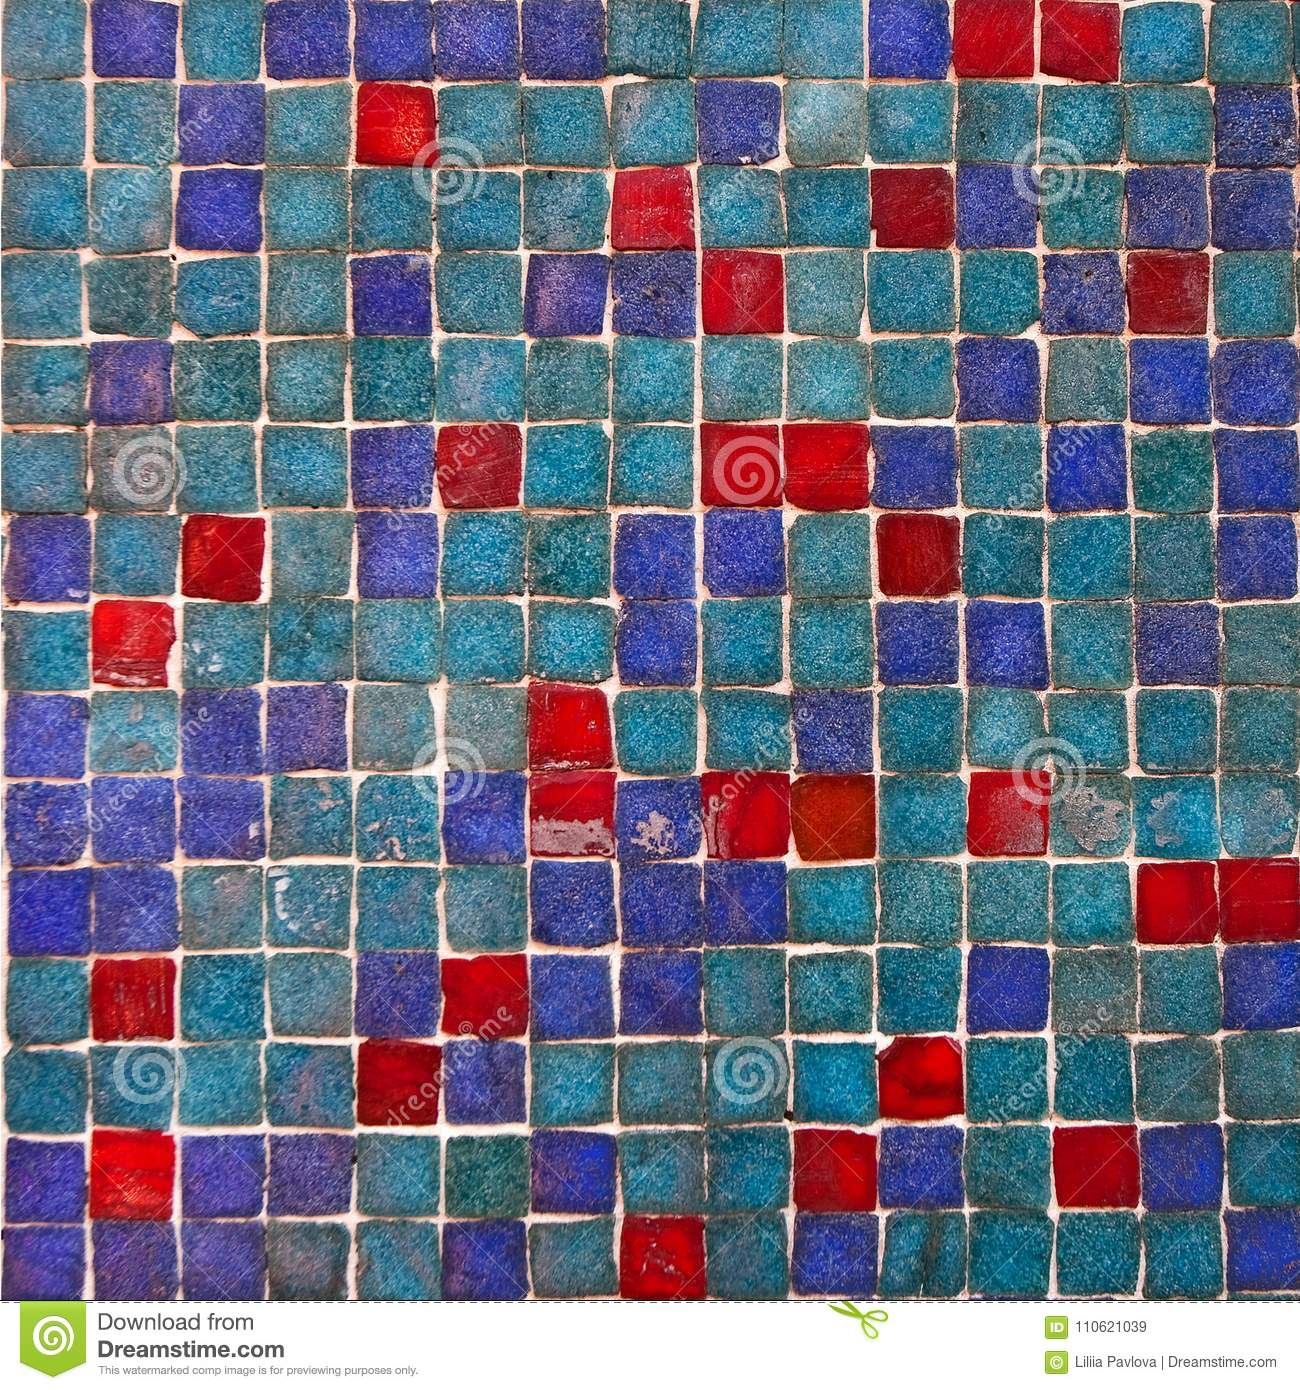 Patterned Colored Tiles On Houses Symbol Of Lisbon. Abstract ...